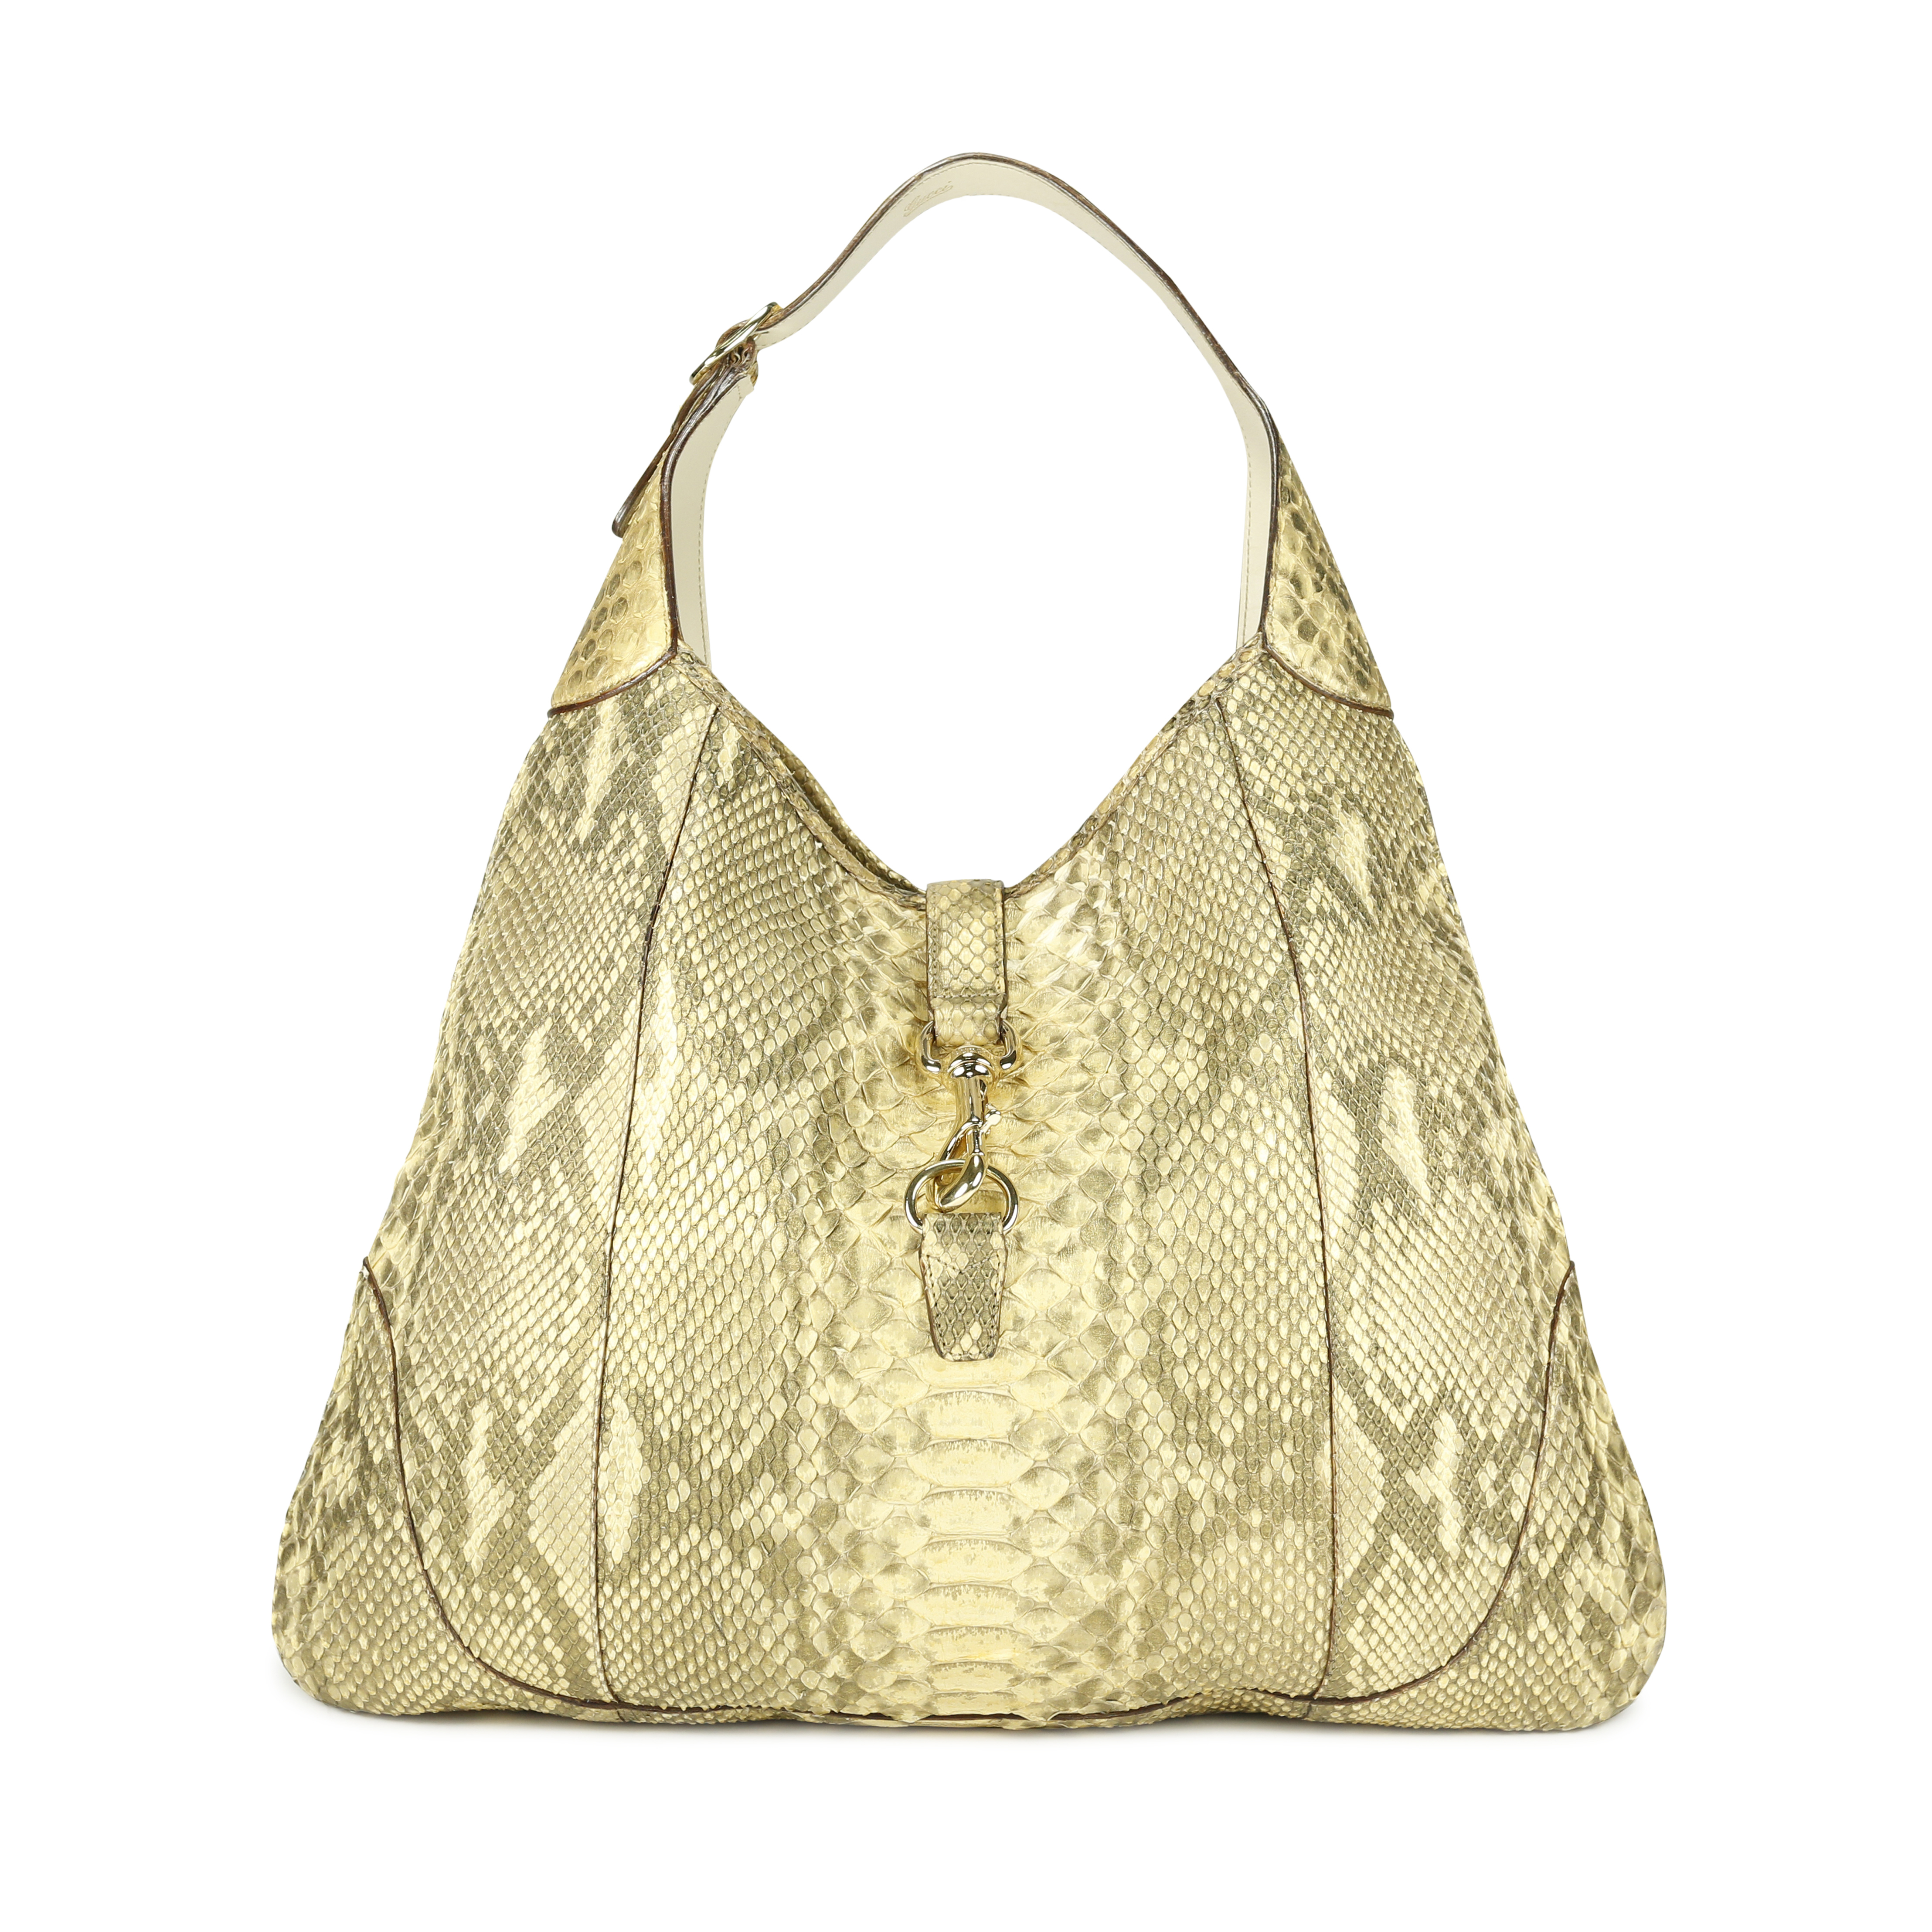 a547ee0750eb9b Authentic Second Hand Gucci Python Jackie O Bouvier Hobo Shoulder Bag  (PSS-171-00017) | THE FIFTH COLLECTION